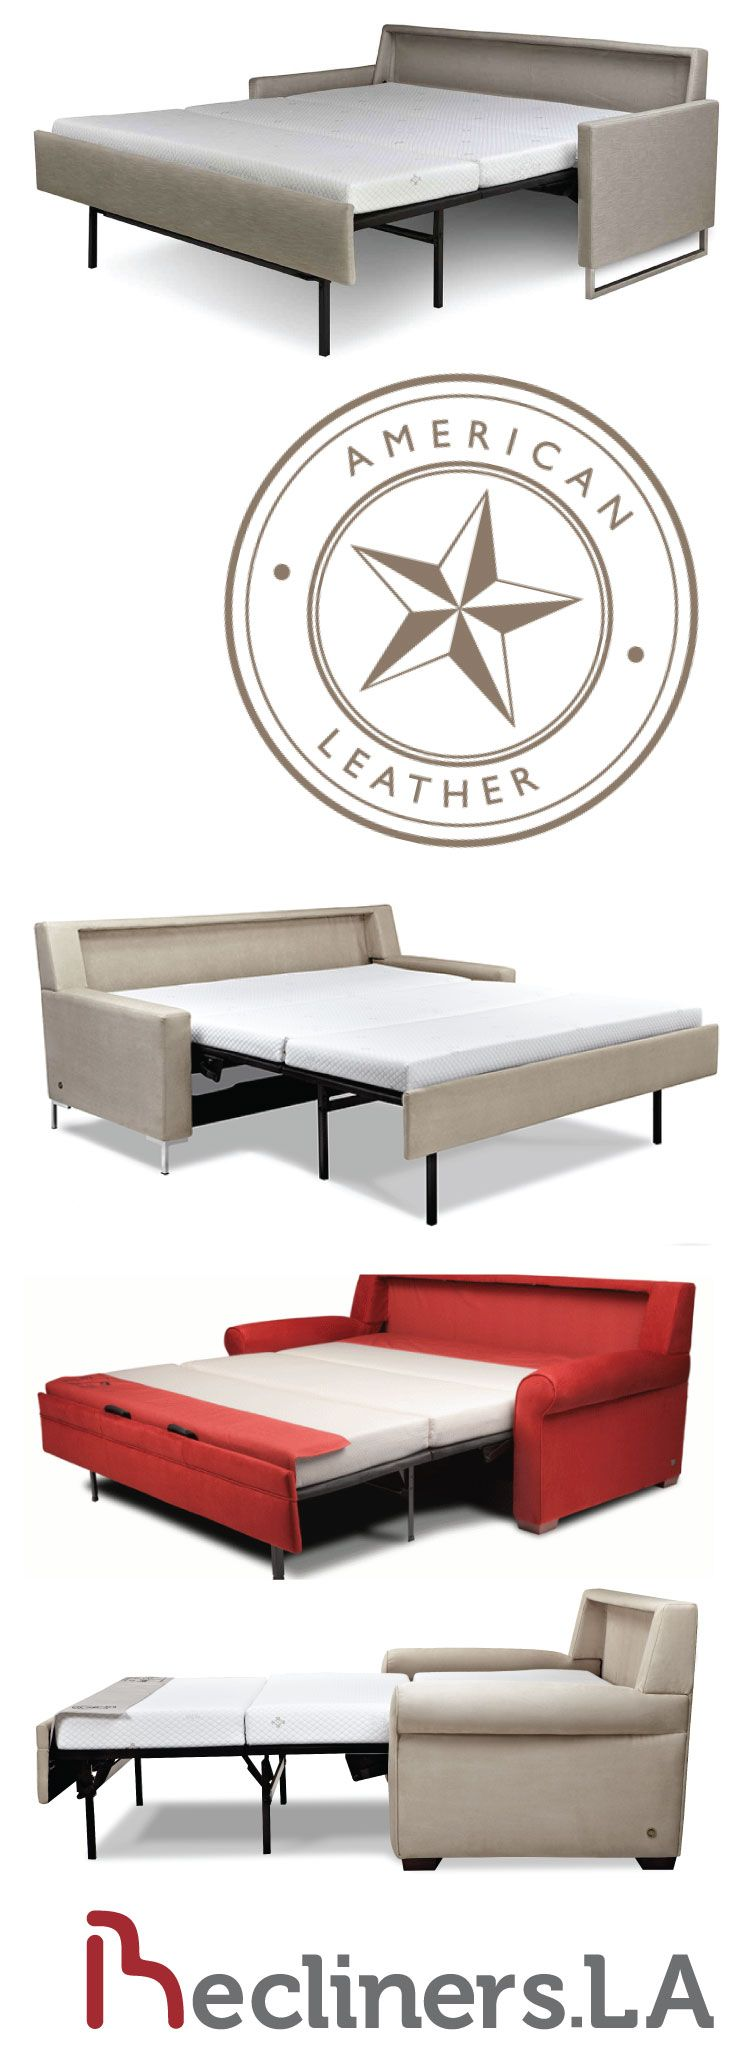 range american pin leather a by in gina sofa leathers sleeper is comforter of comfort available sectional